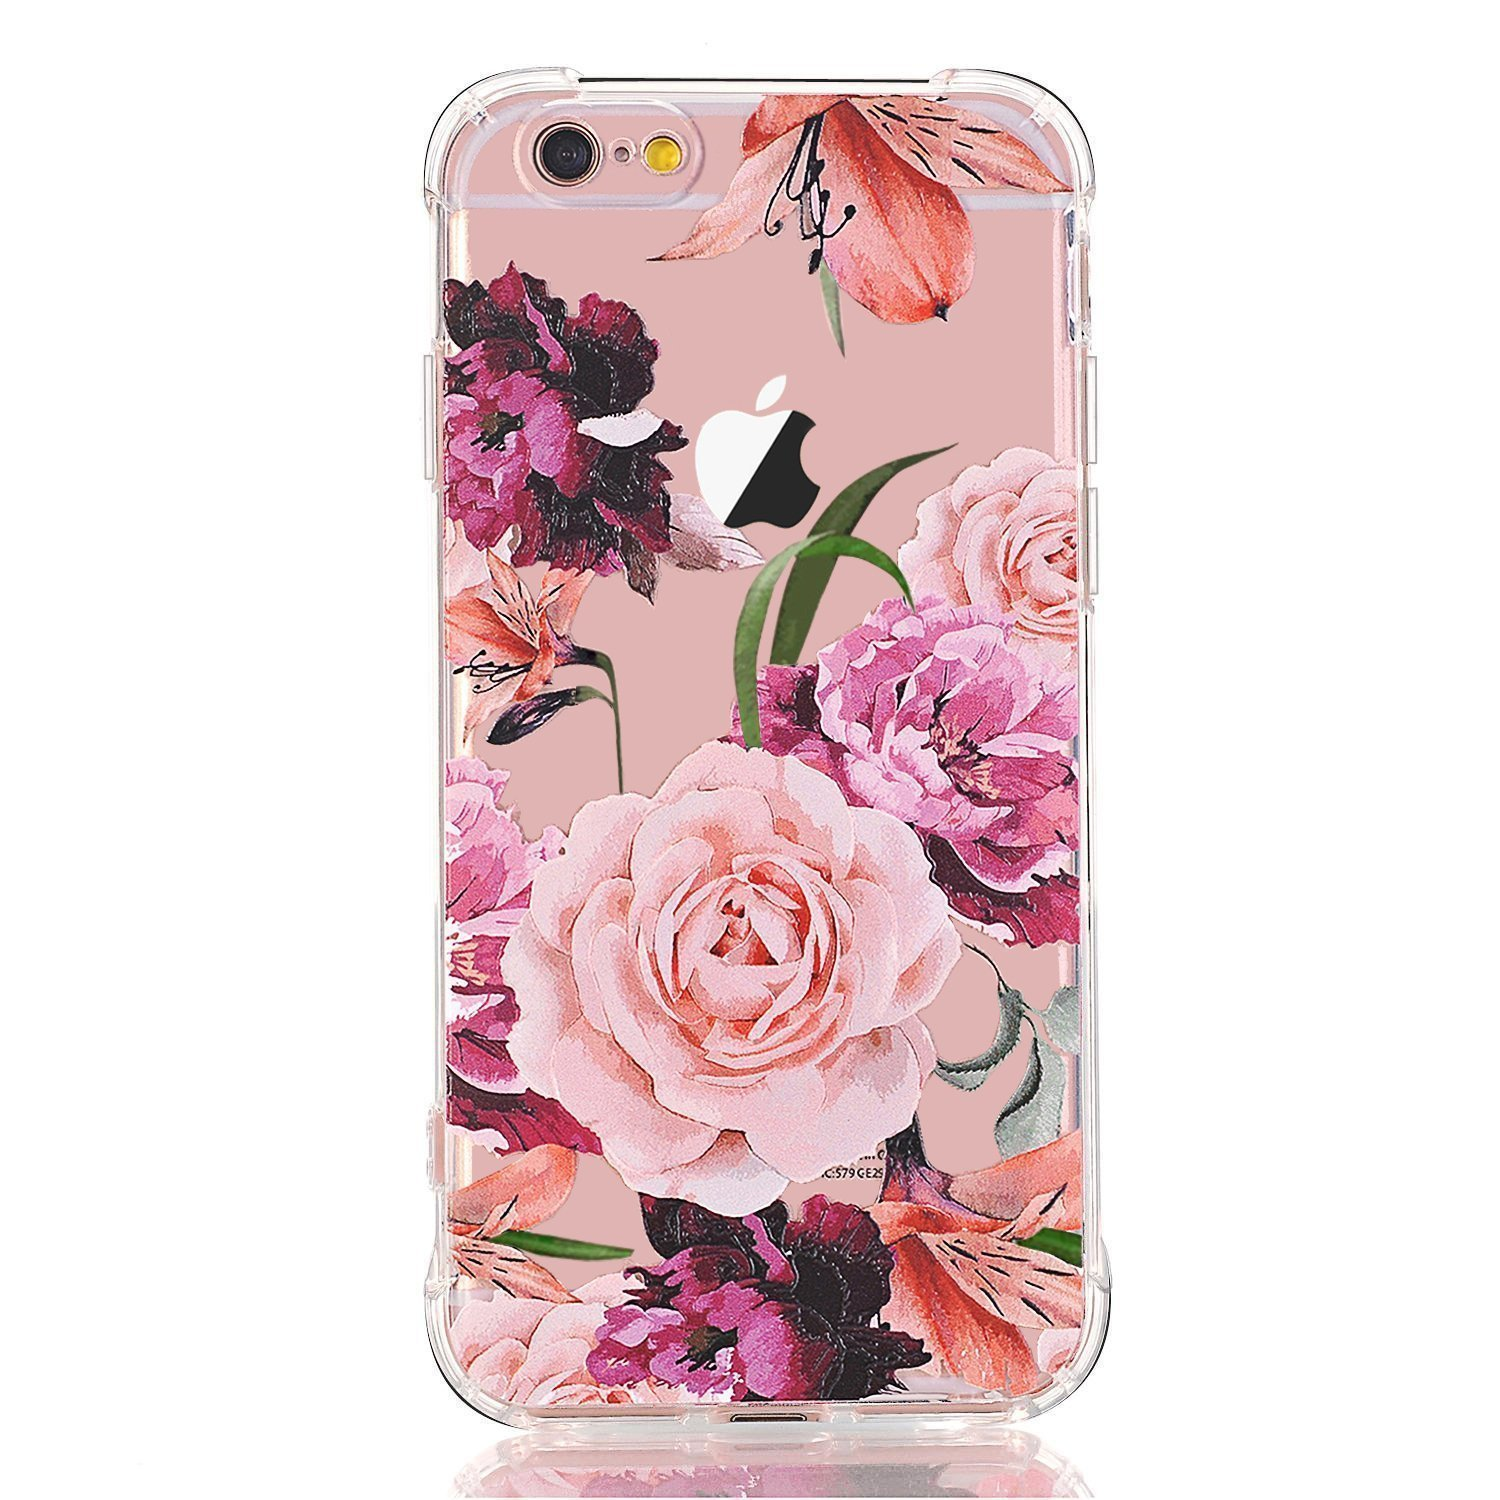 factory authentic 94d7c 659c3 luolnh iPhone 5 case,iPhone 5s Se Case with Flowers, Slim Shockproof Clear  Floral Pattern Soft Flexible TPU Back Cover -Purple Rose